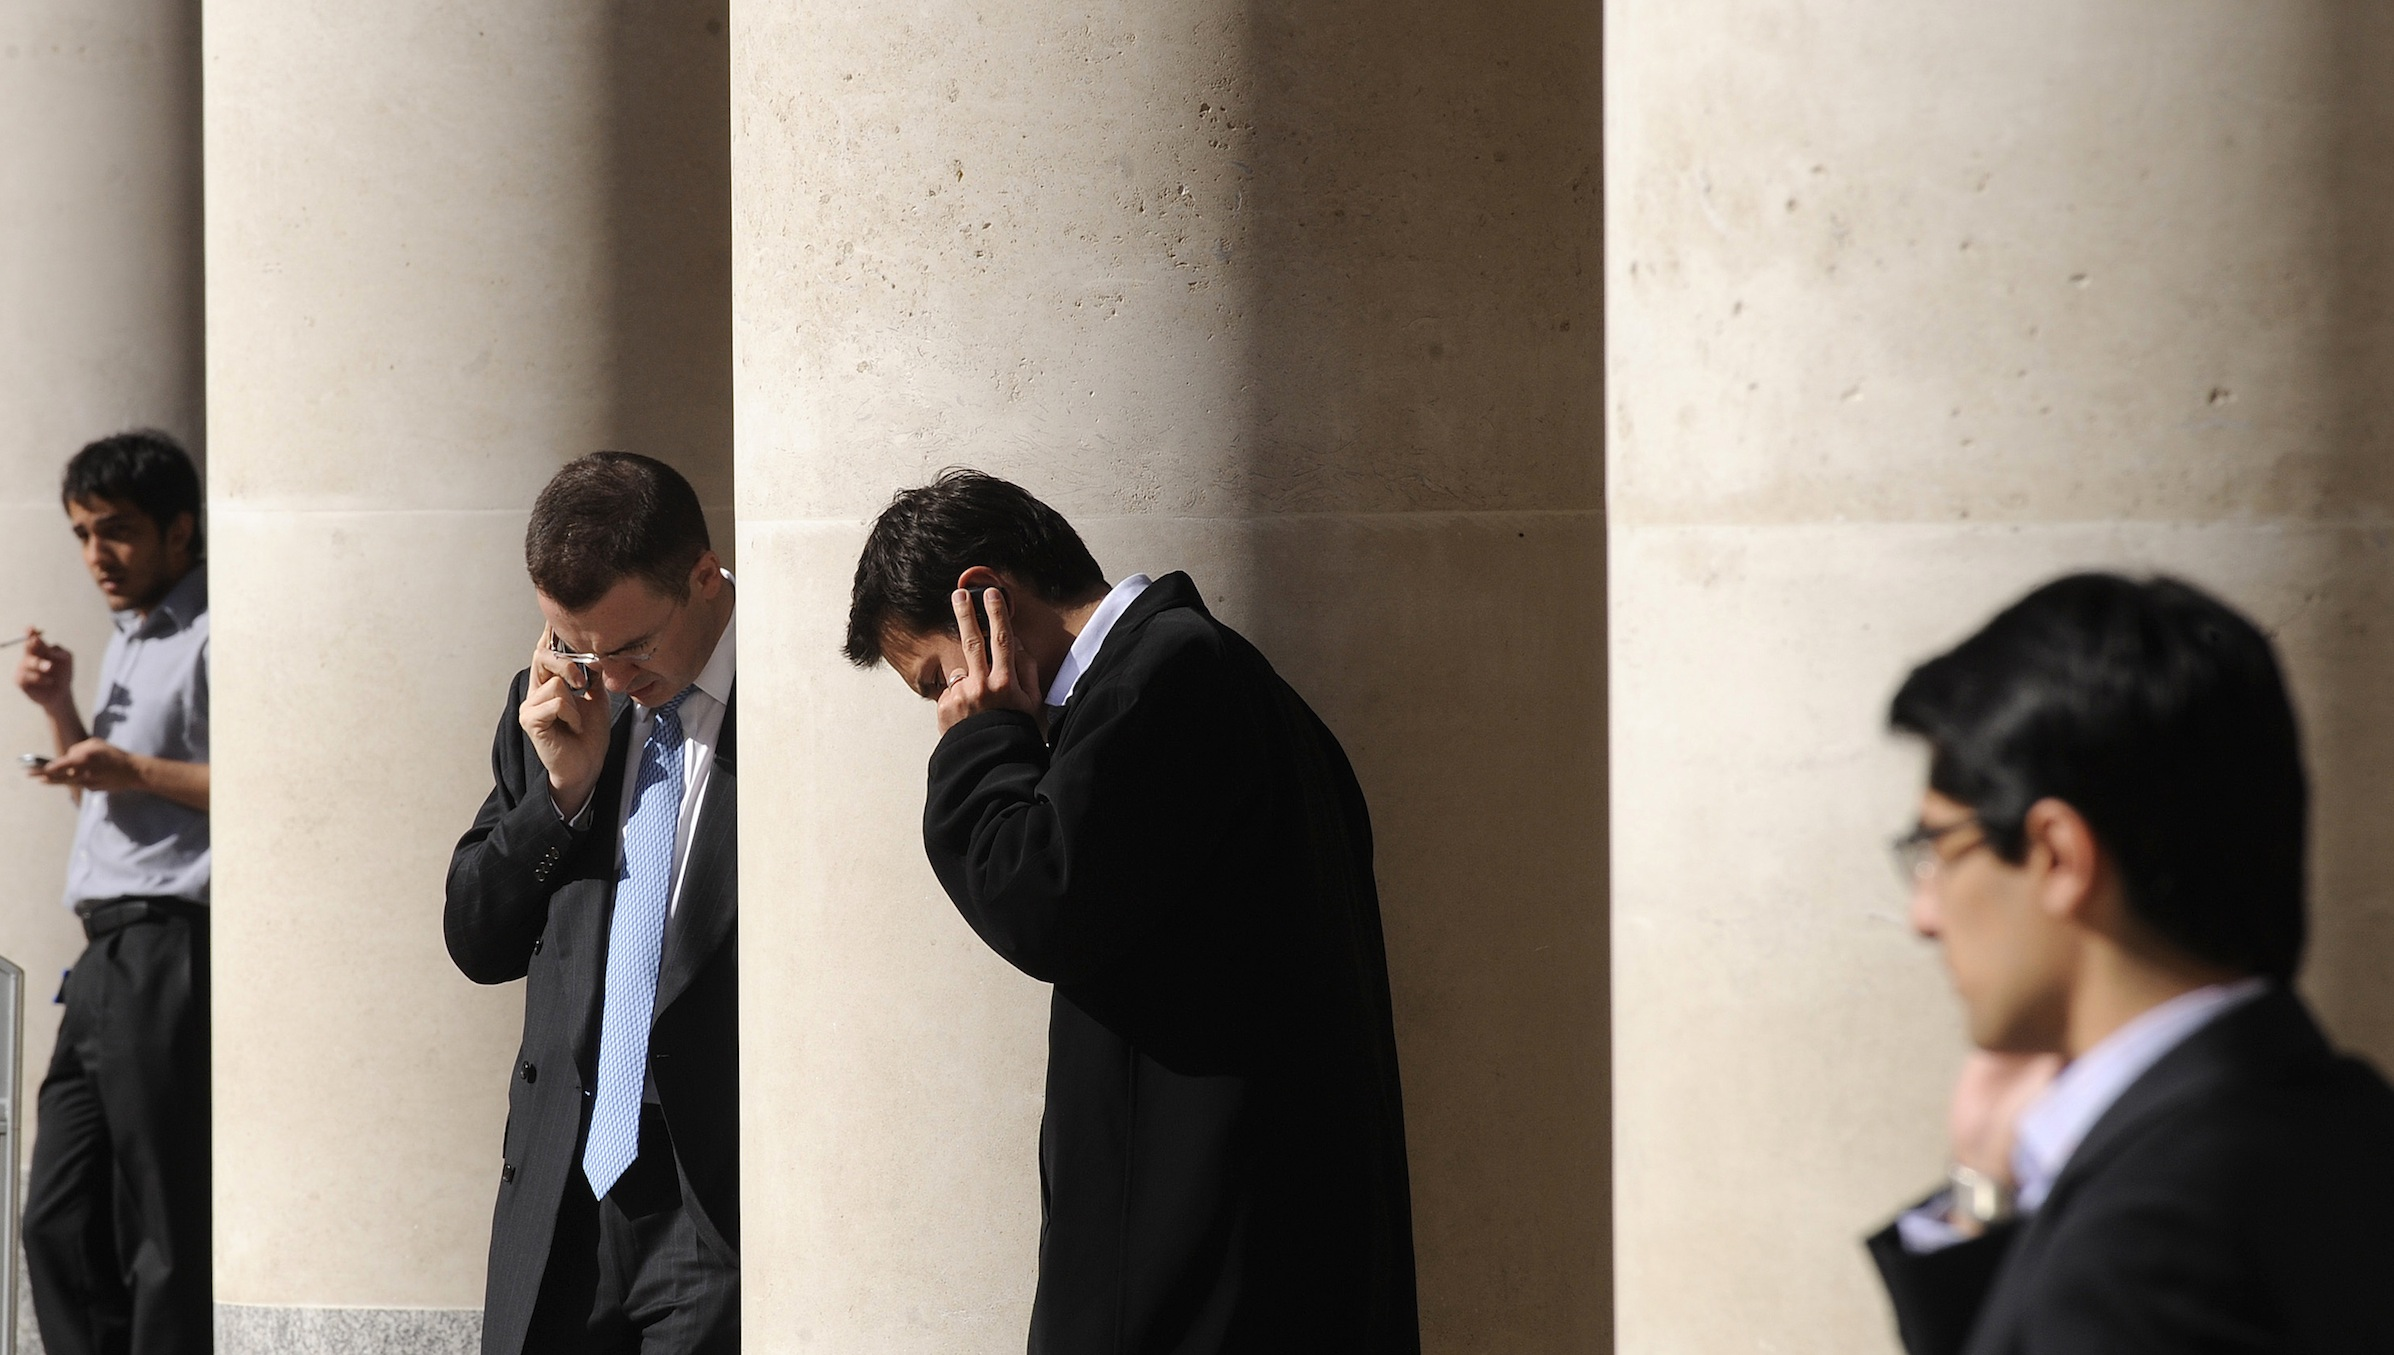 City workers make phone calls outside the London Stock Exchange in Paternoster Square in the City of London at lunchtime October 1, 2008. European policymakers have called on the U.S. Senate to approve a revised rescue plan aimed at tackling the worst financial crisis since the 1930s. REUTERS/Toby Melville (BRITAIN) - RTX93SY